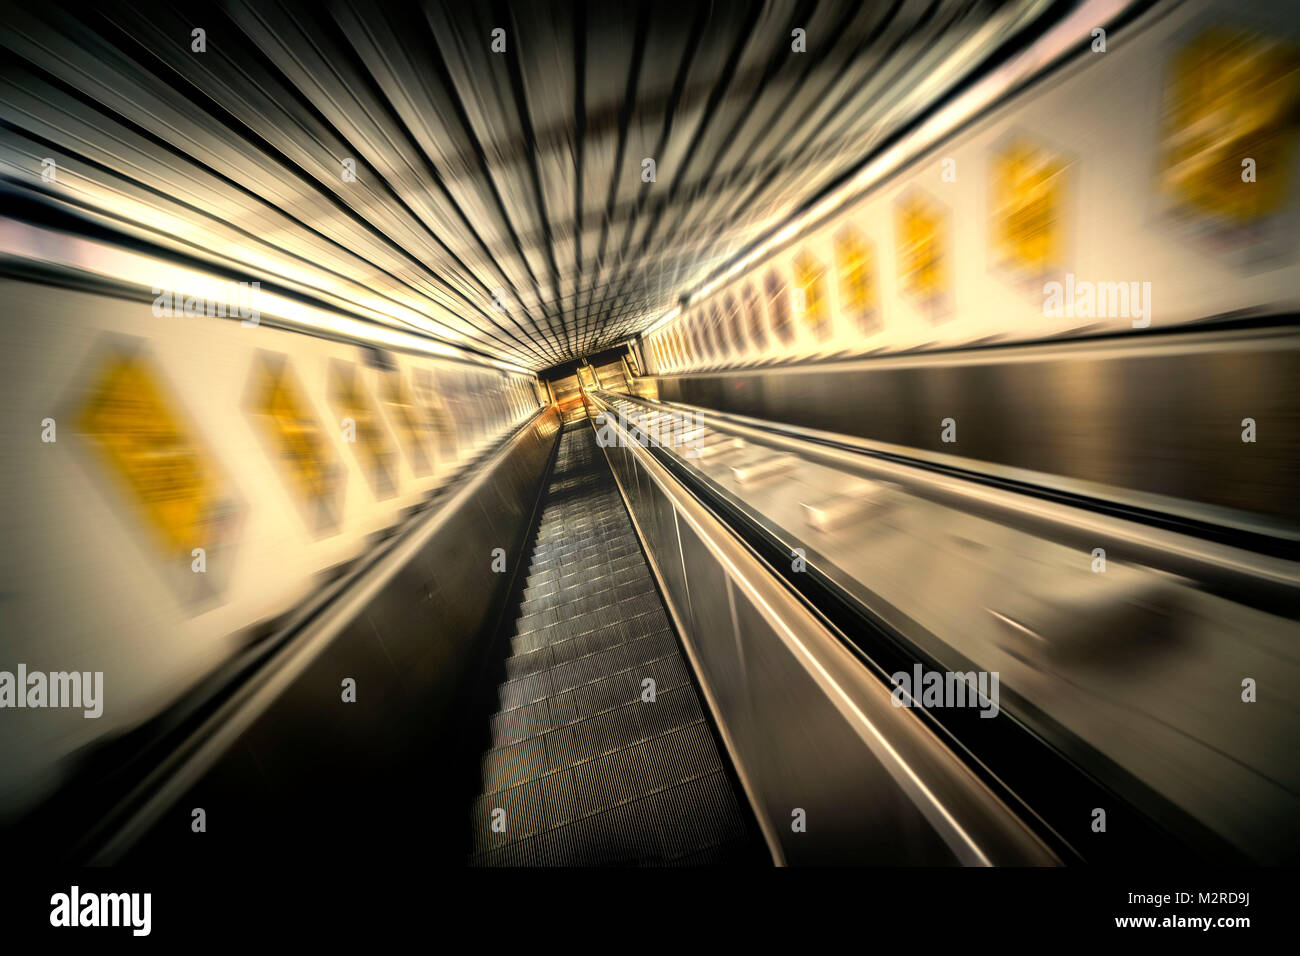 Moving stairs to the underground train tunnel, blur, vanishing point perspective - Stock Image